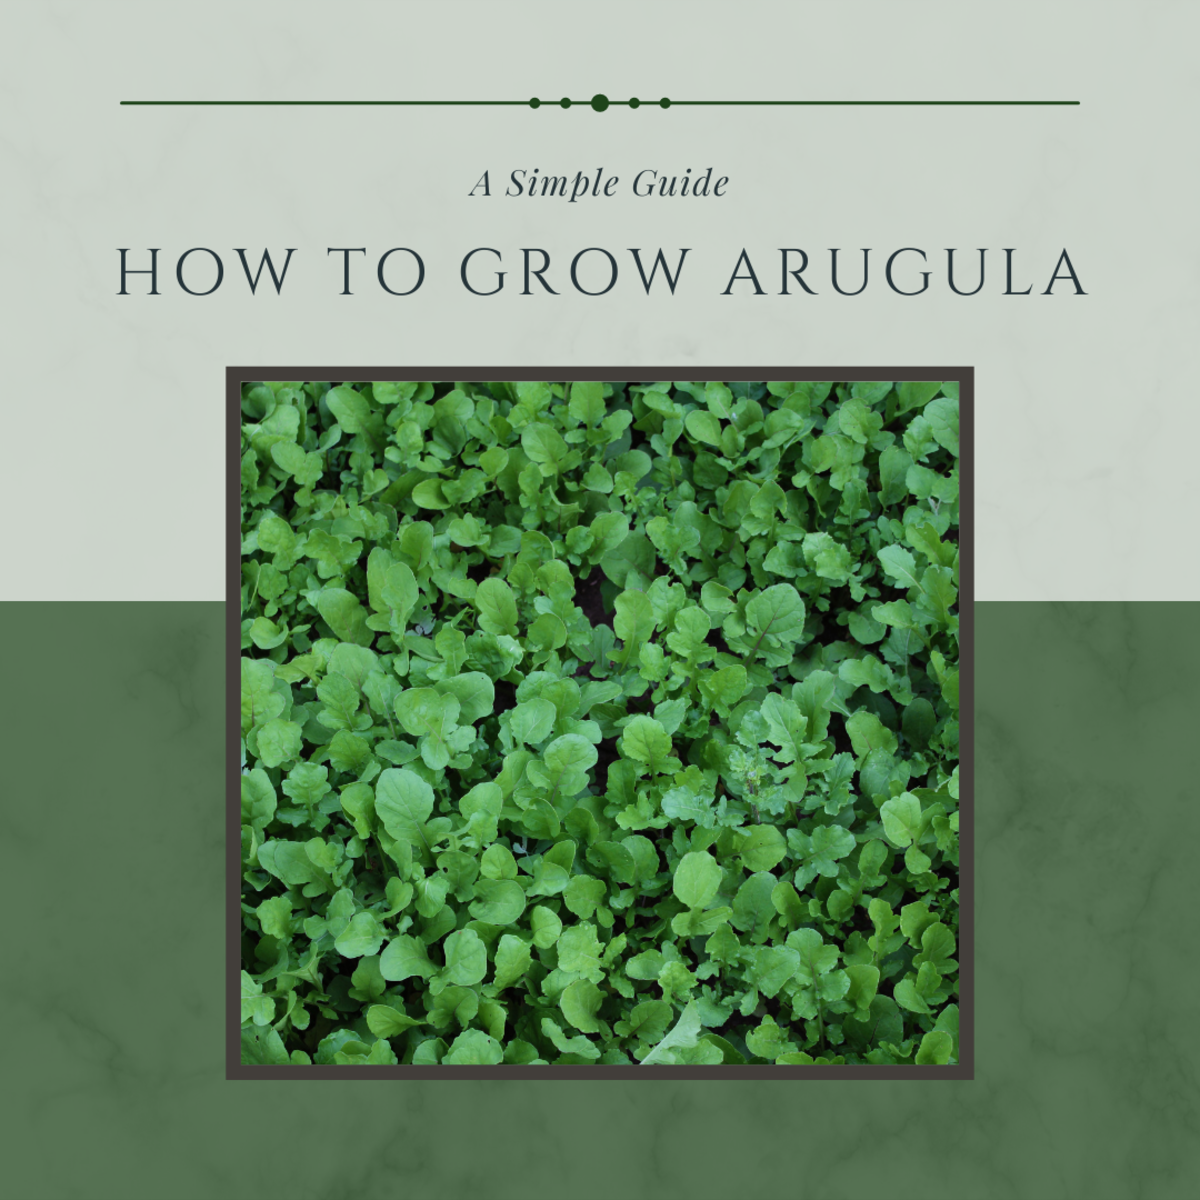 Tips From My Garden: How to Grow and Use Arugula